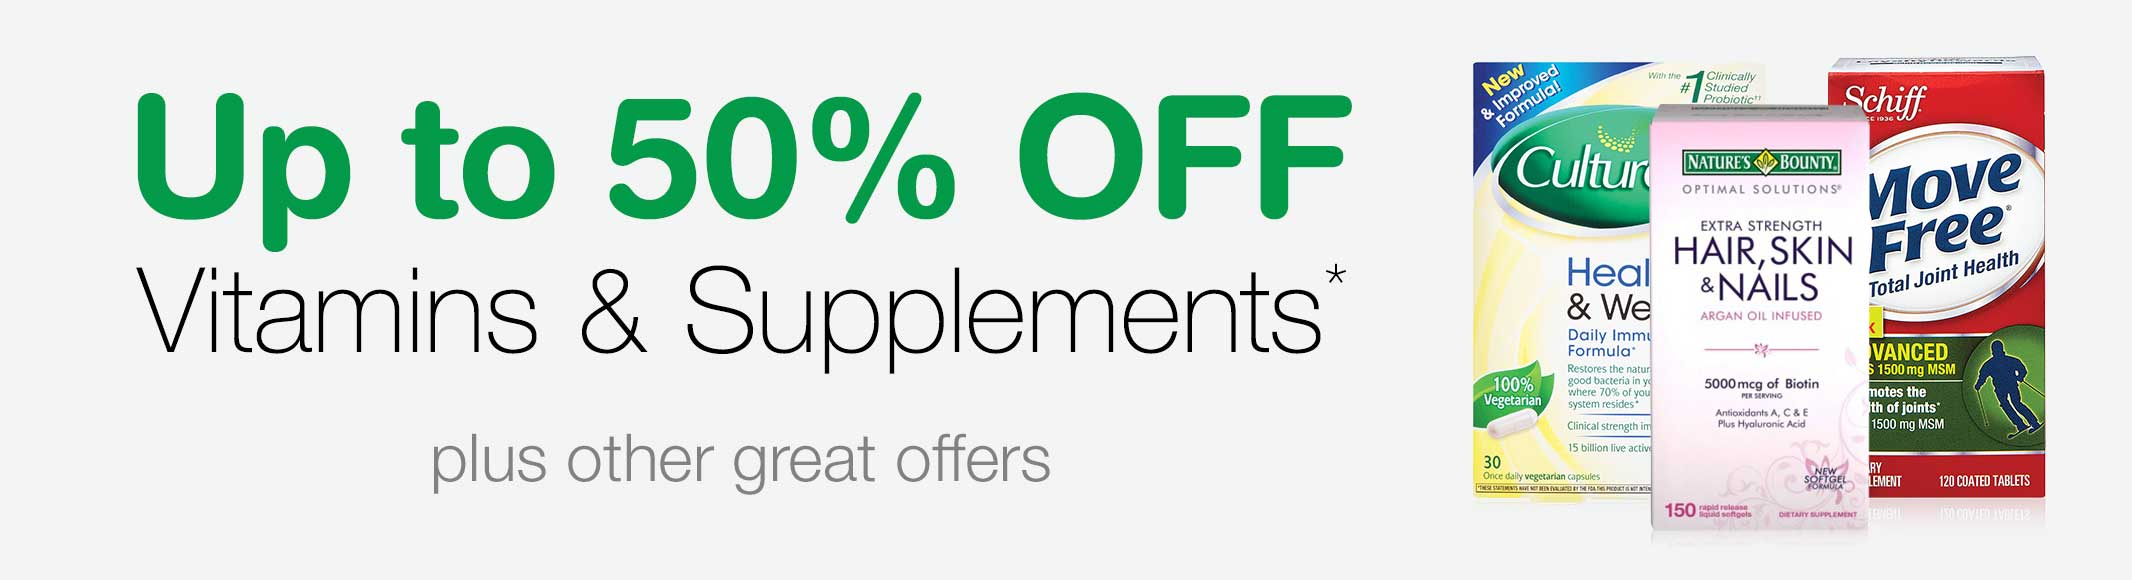 Up to 50% OFF Vitamins & Supplements.* Plus other great offers.